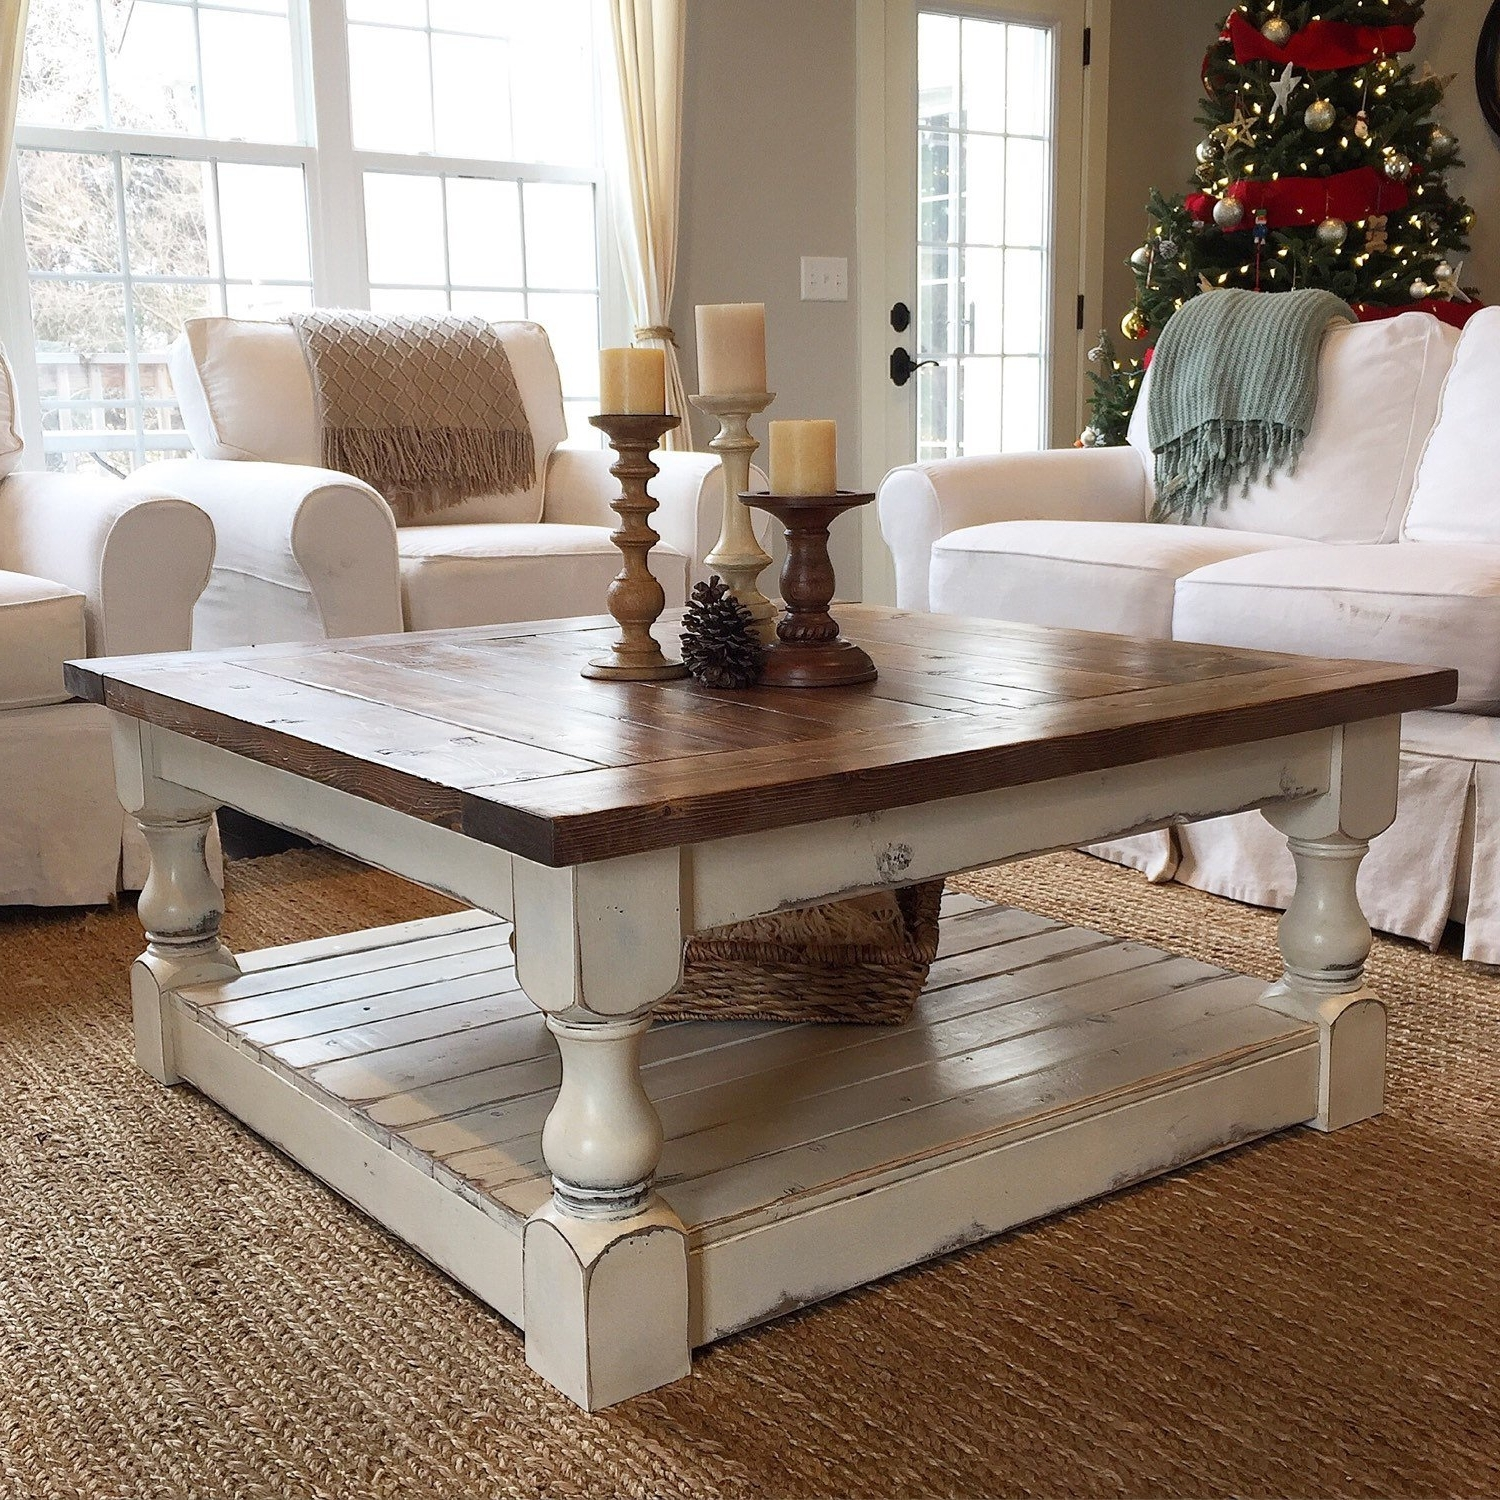 Etsy In Well Known Large Scale Chinese Farmhouse Coffee Tables (View 7 of 20)